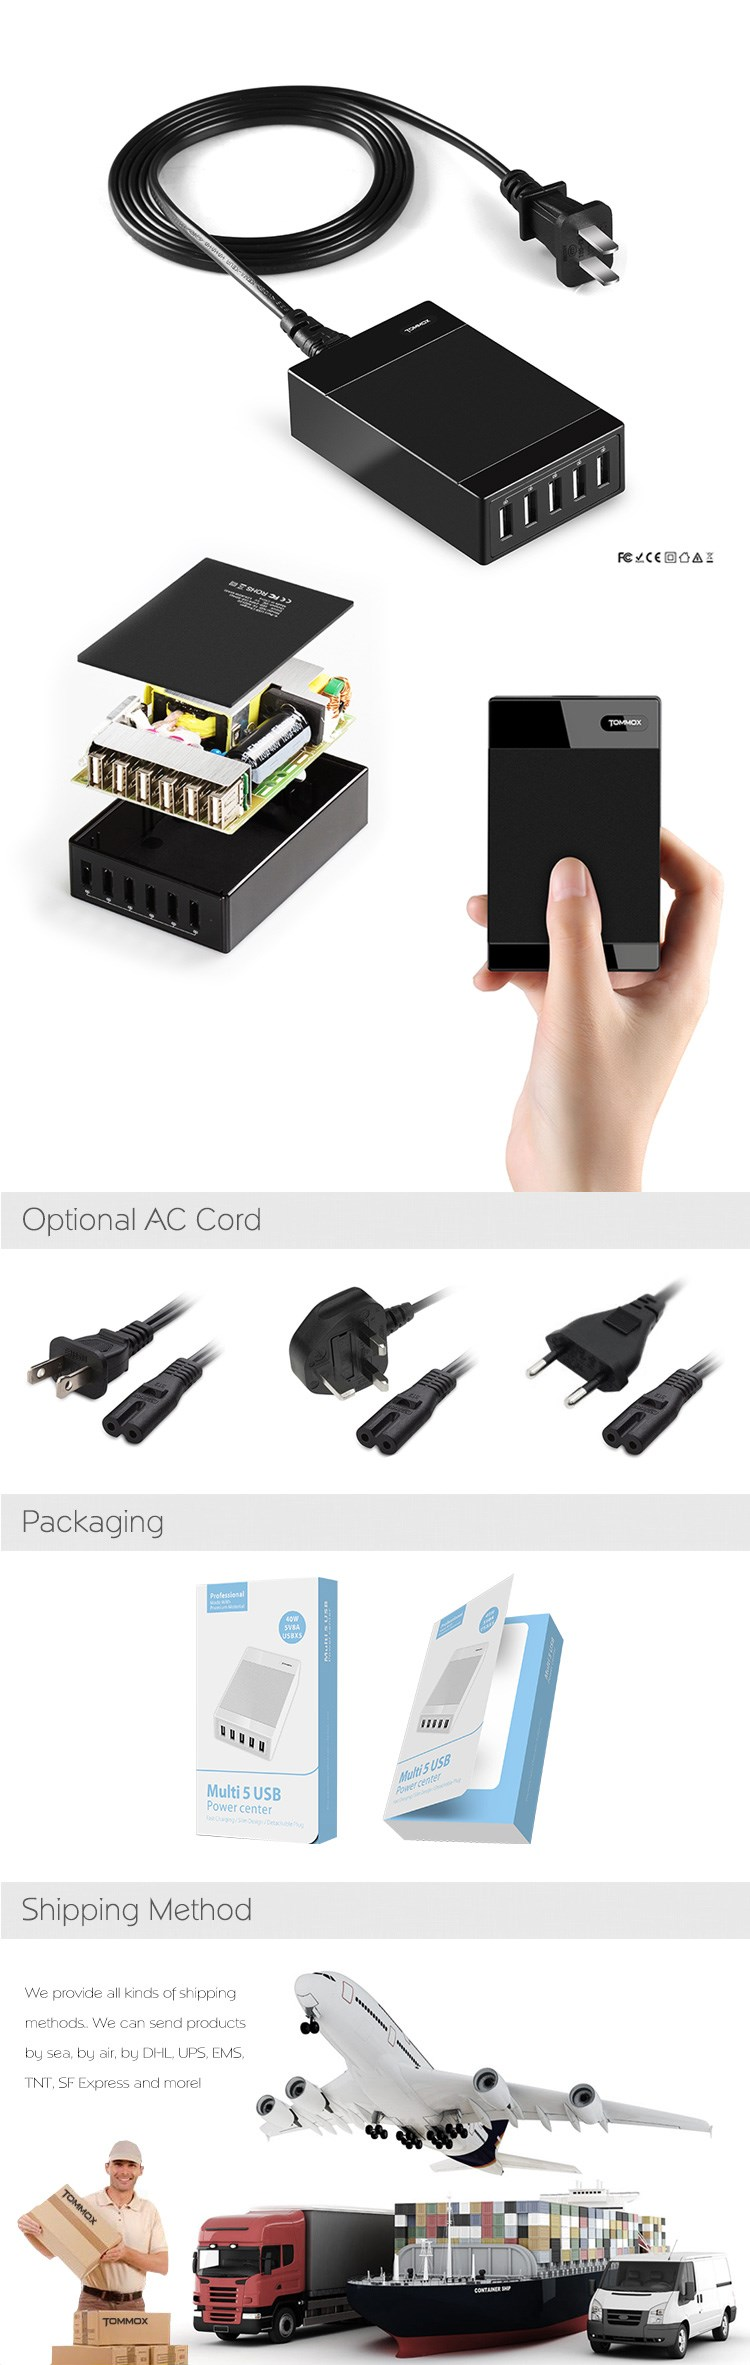 hot sales 5v 2a 40w usb charger for 1plus second generation